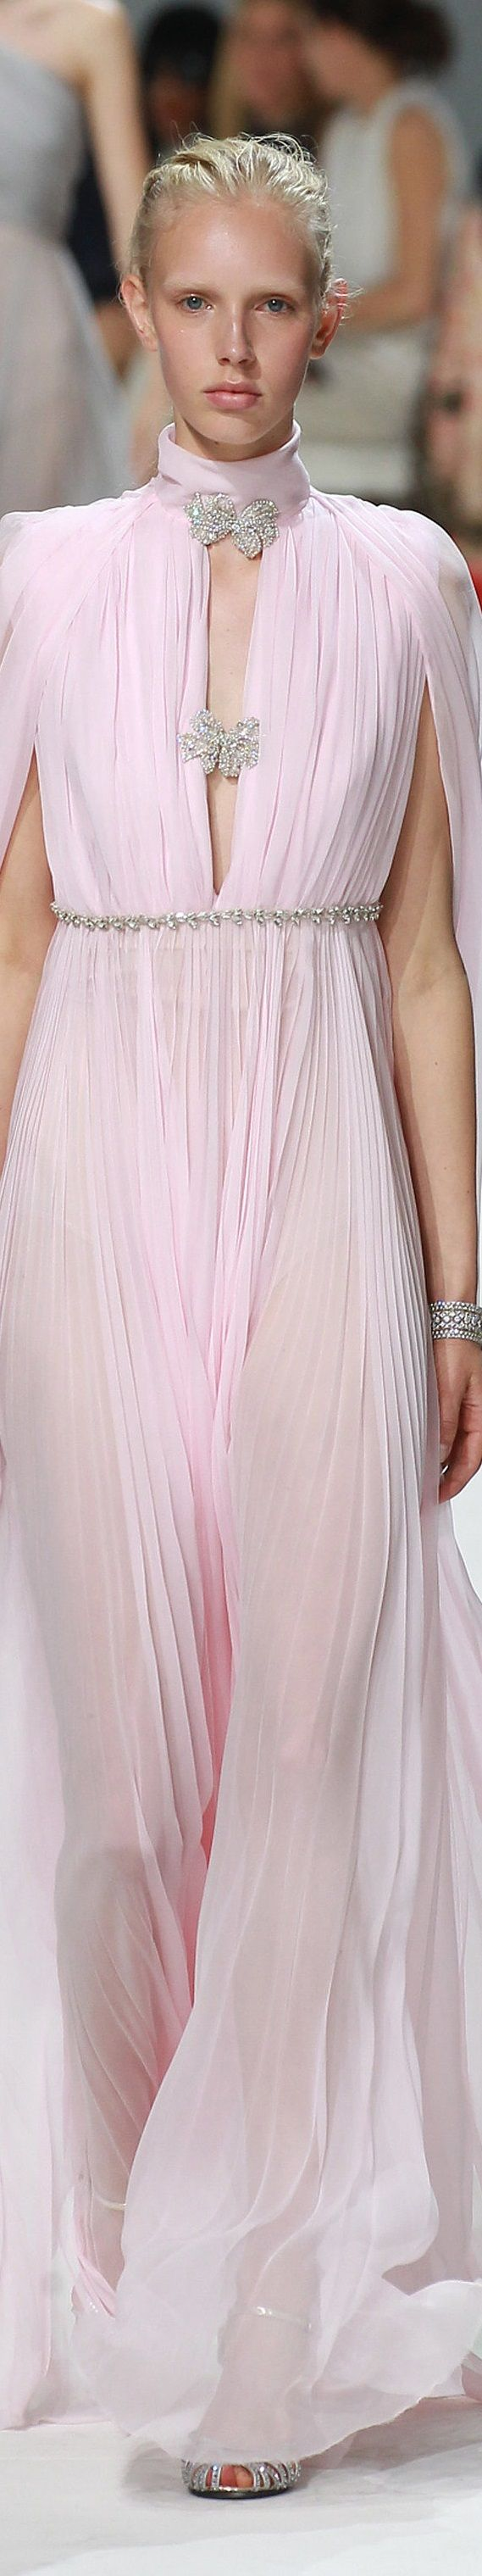 Giambattista Valli fall 2016 couture